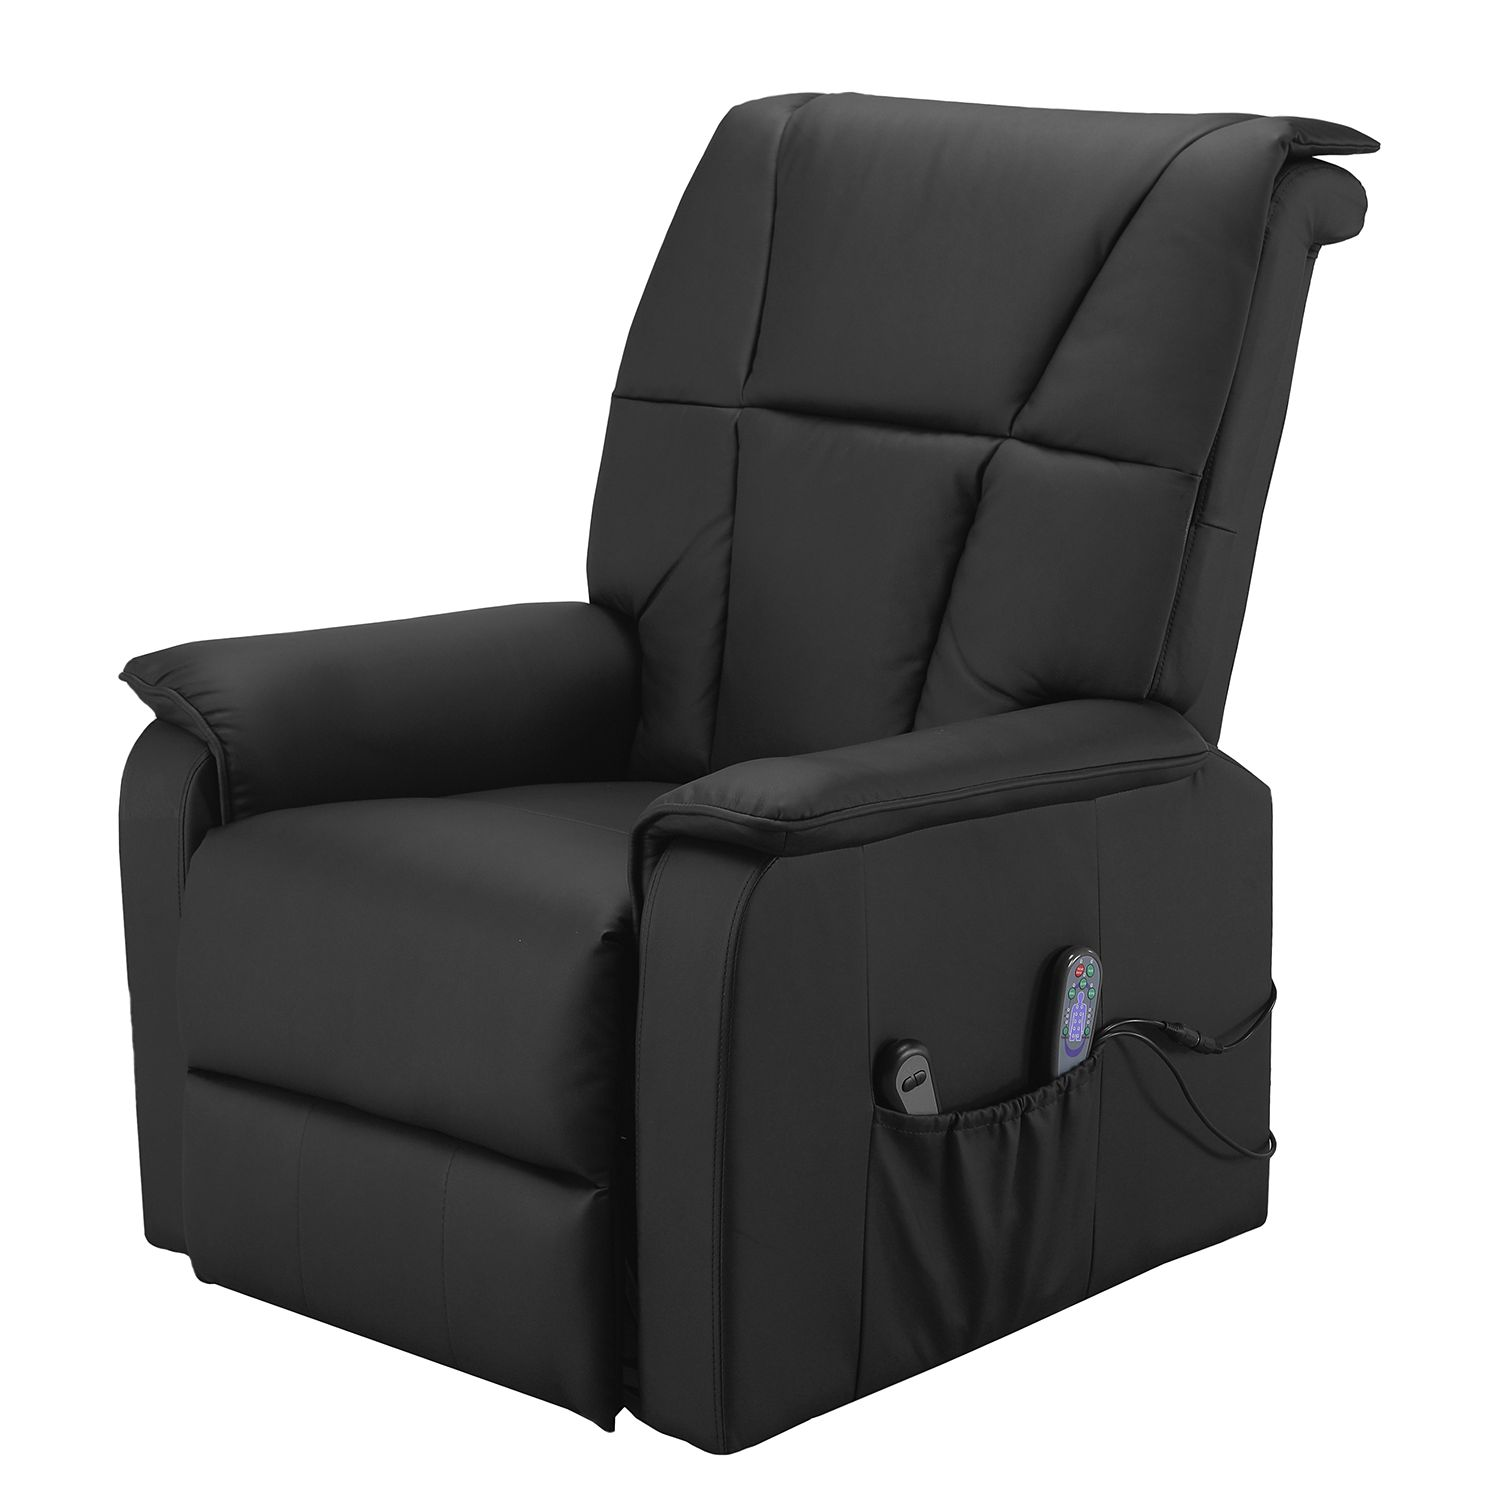 Massagesessel Deluxe Unique Real Relax Massage Chair Pictures Home